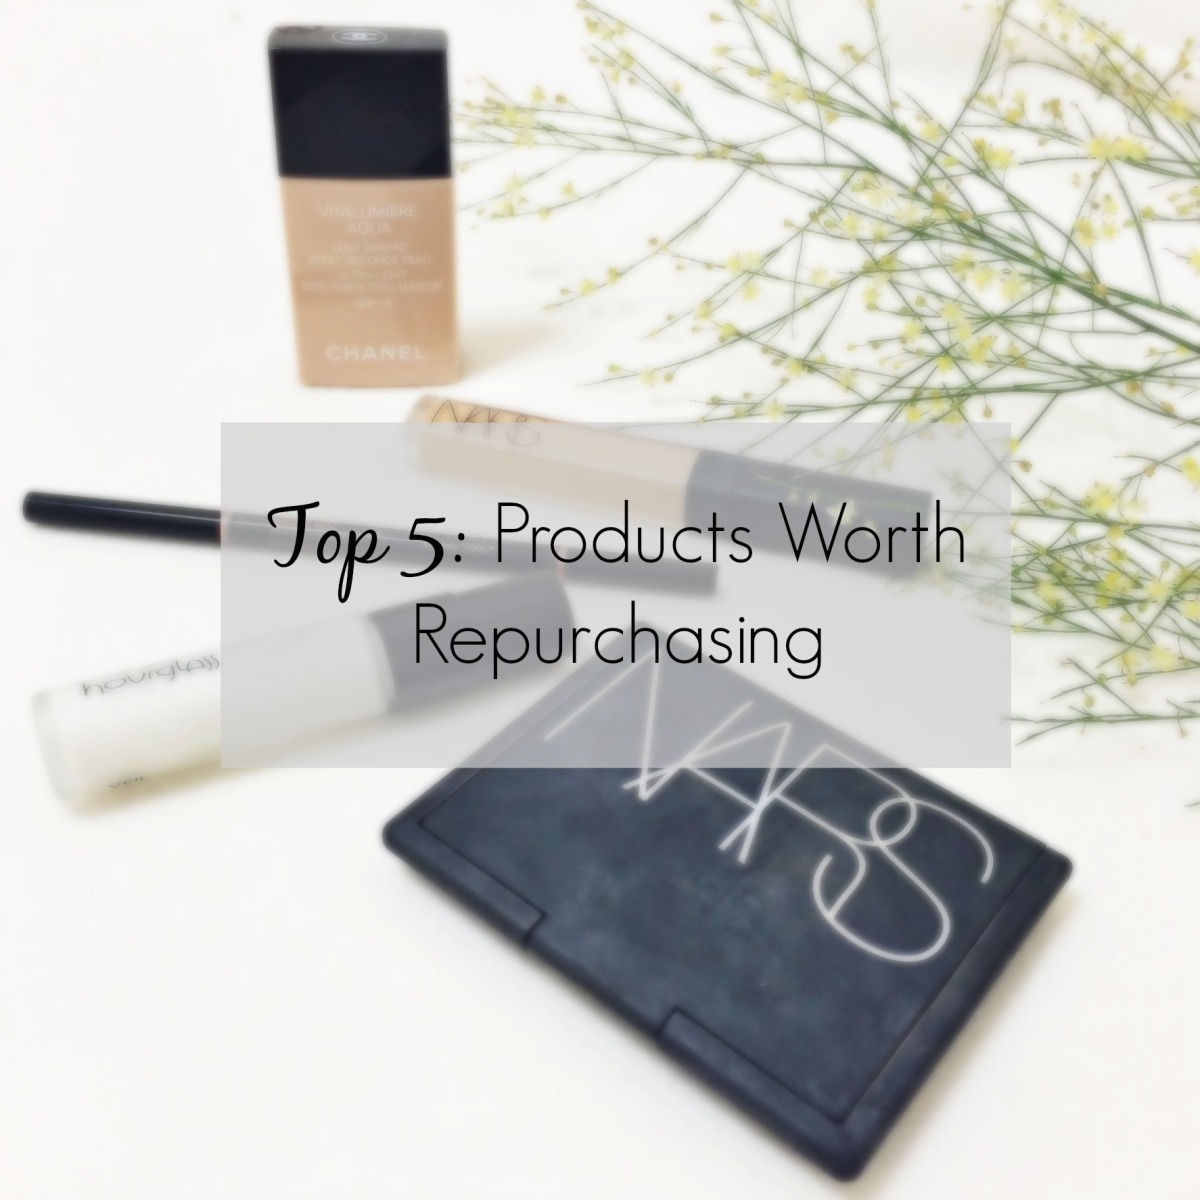 Top 5 Products Worth Repurchasing